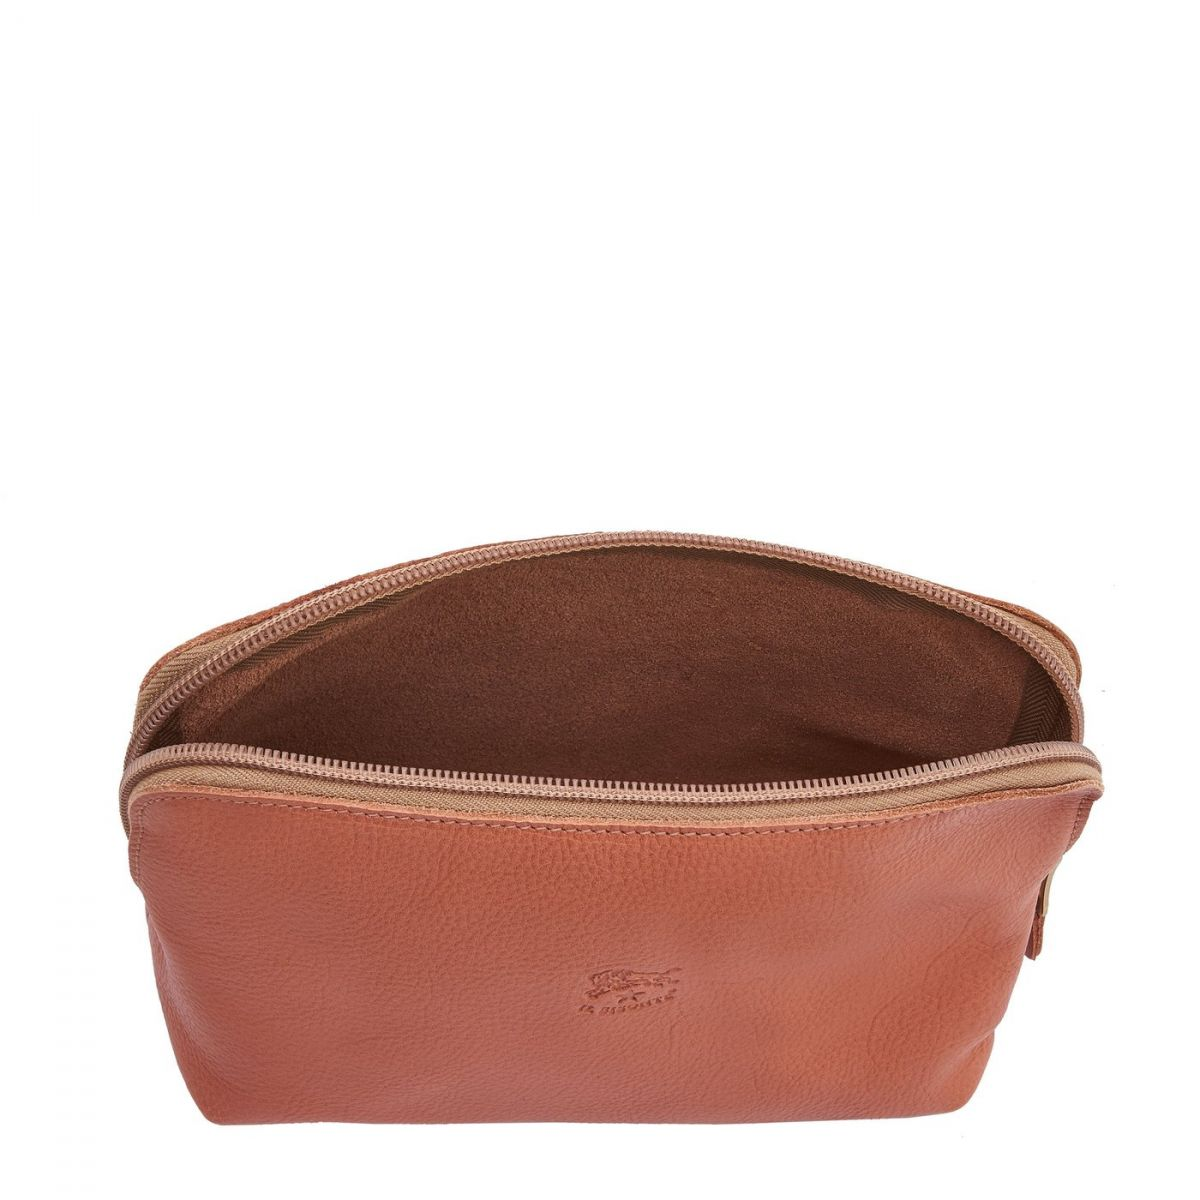 Women's Case in Cowhide Leather SCA033 color Pink Pepper | Details